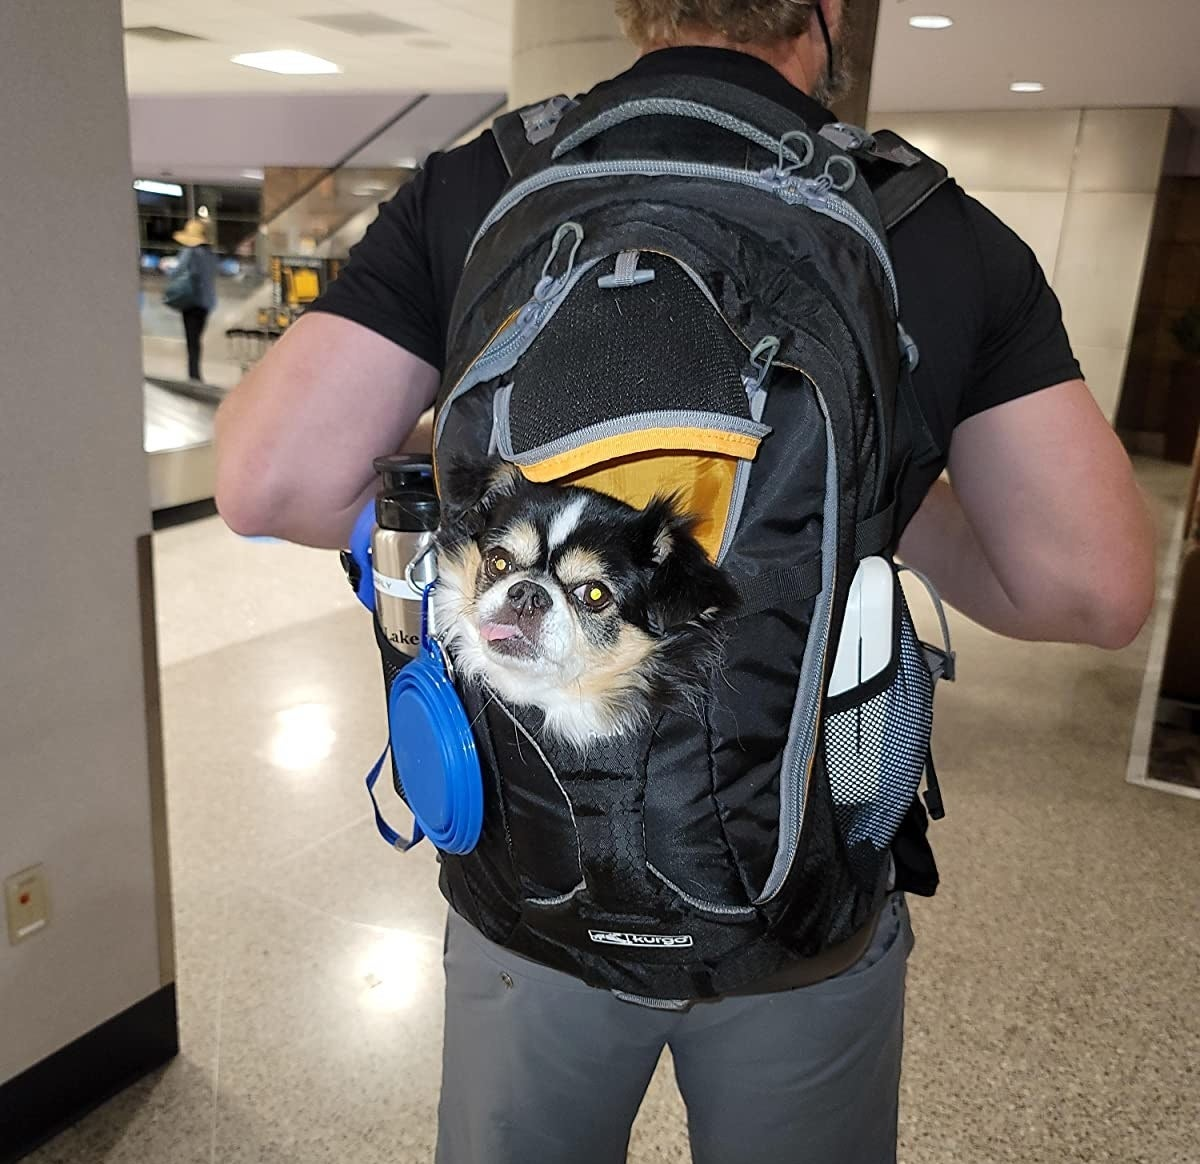 reviewer photo showing their dog's face sticking out of the carrier backpack